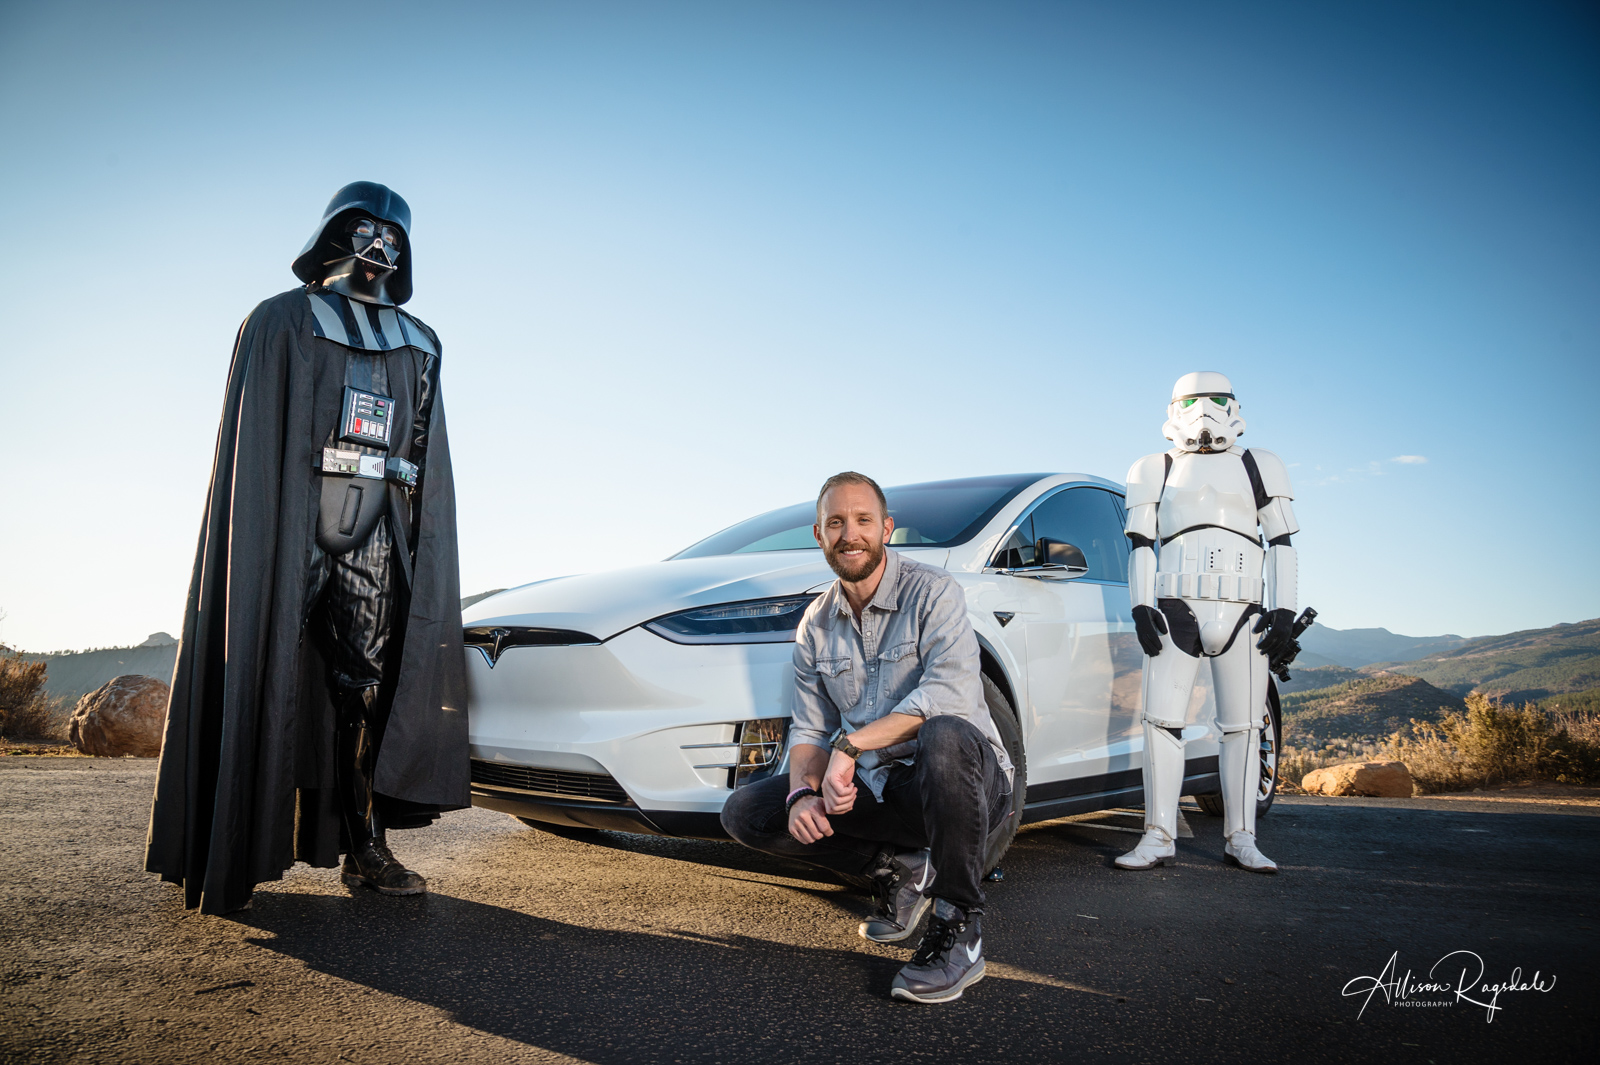 Hank Blum's Headshots with a Tesla, a Stormtrooper and Darth Vader